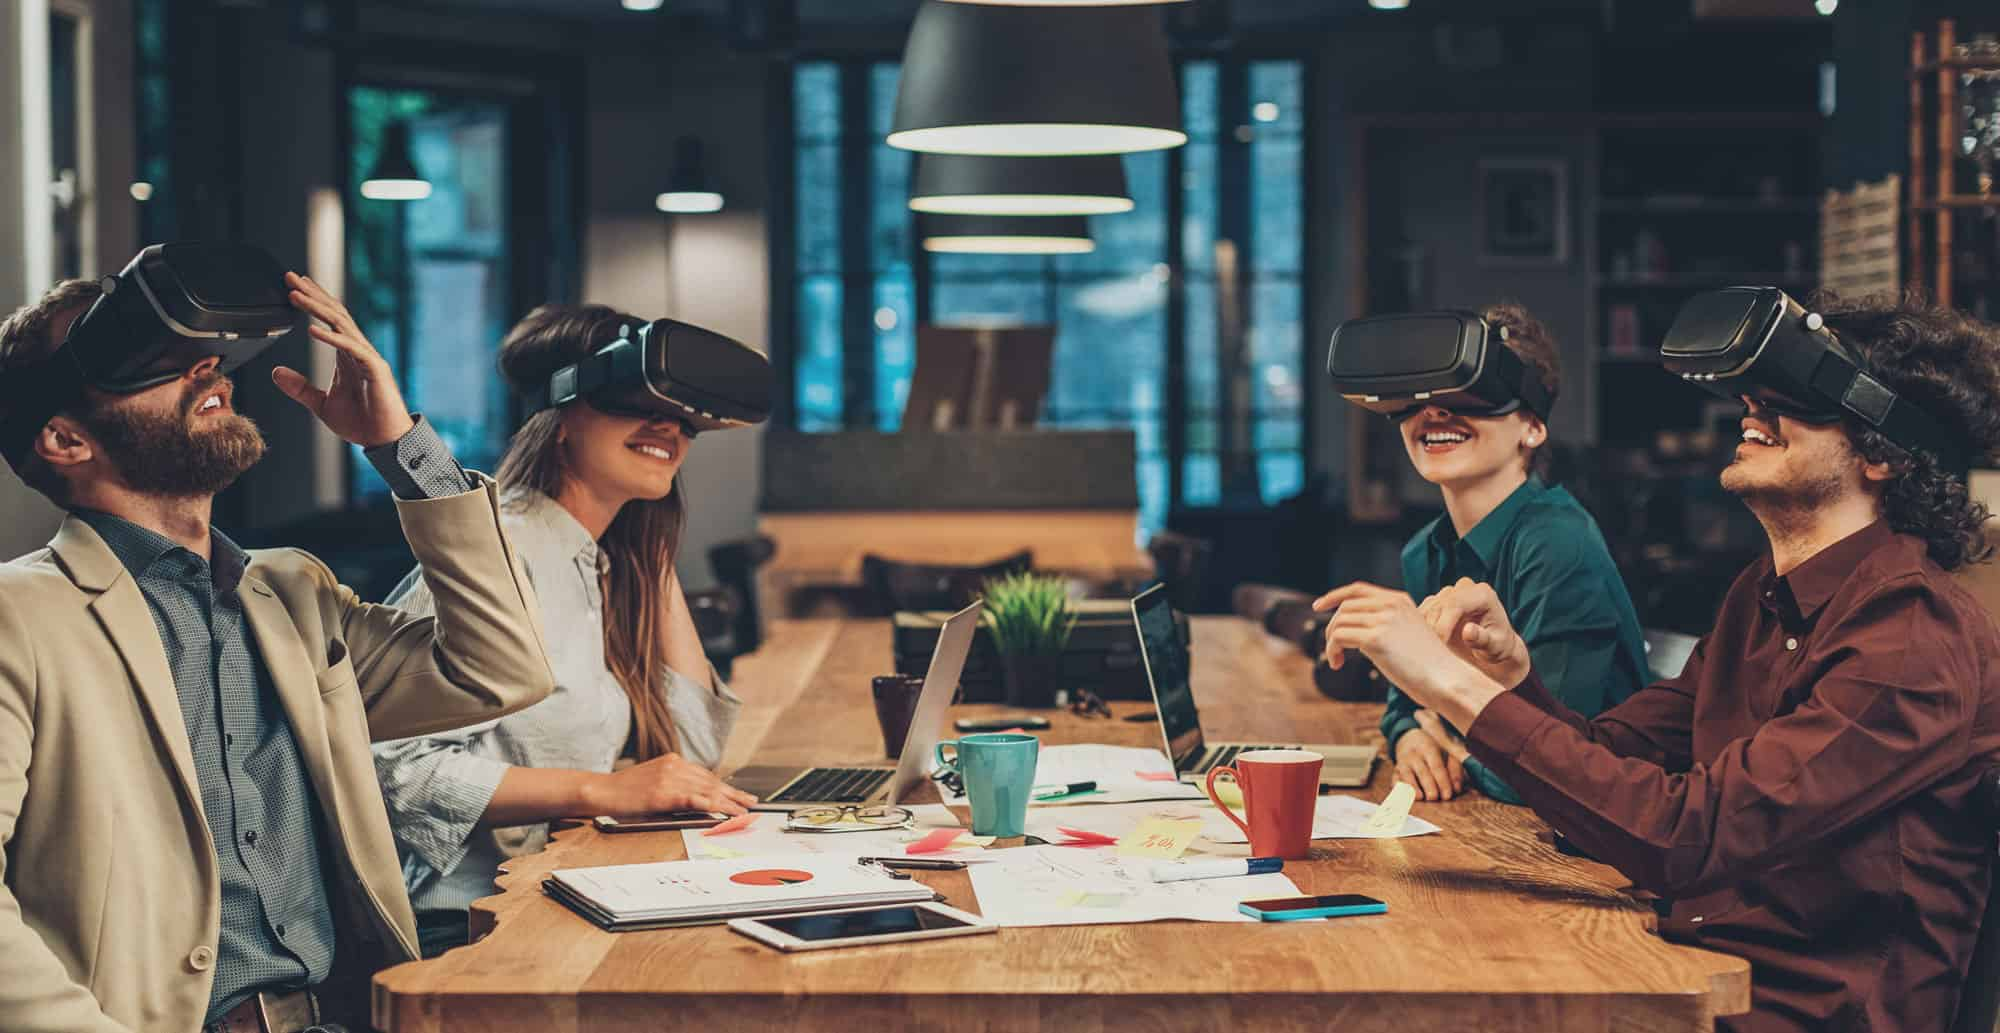 Reality Shift: 10 Ways Virtual and Augmented Reality are Changing Business